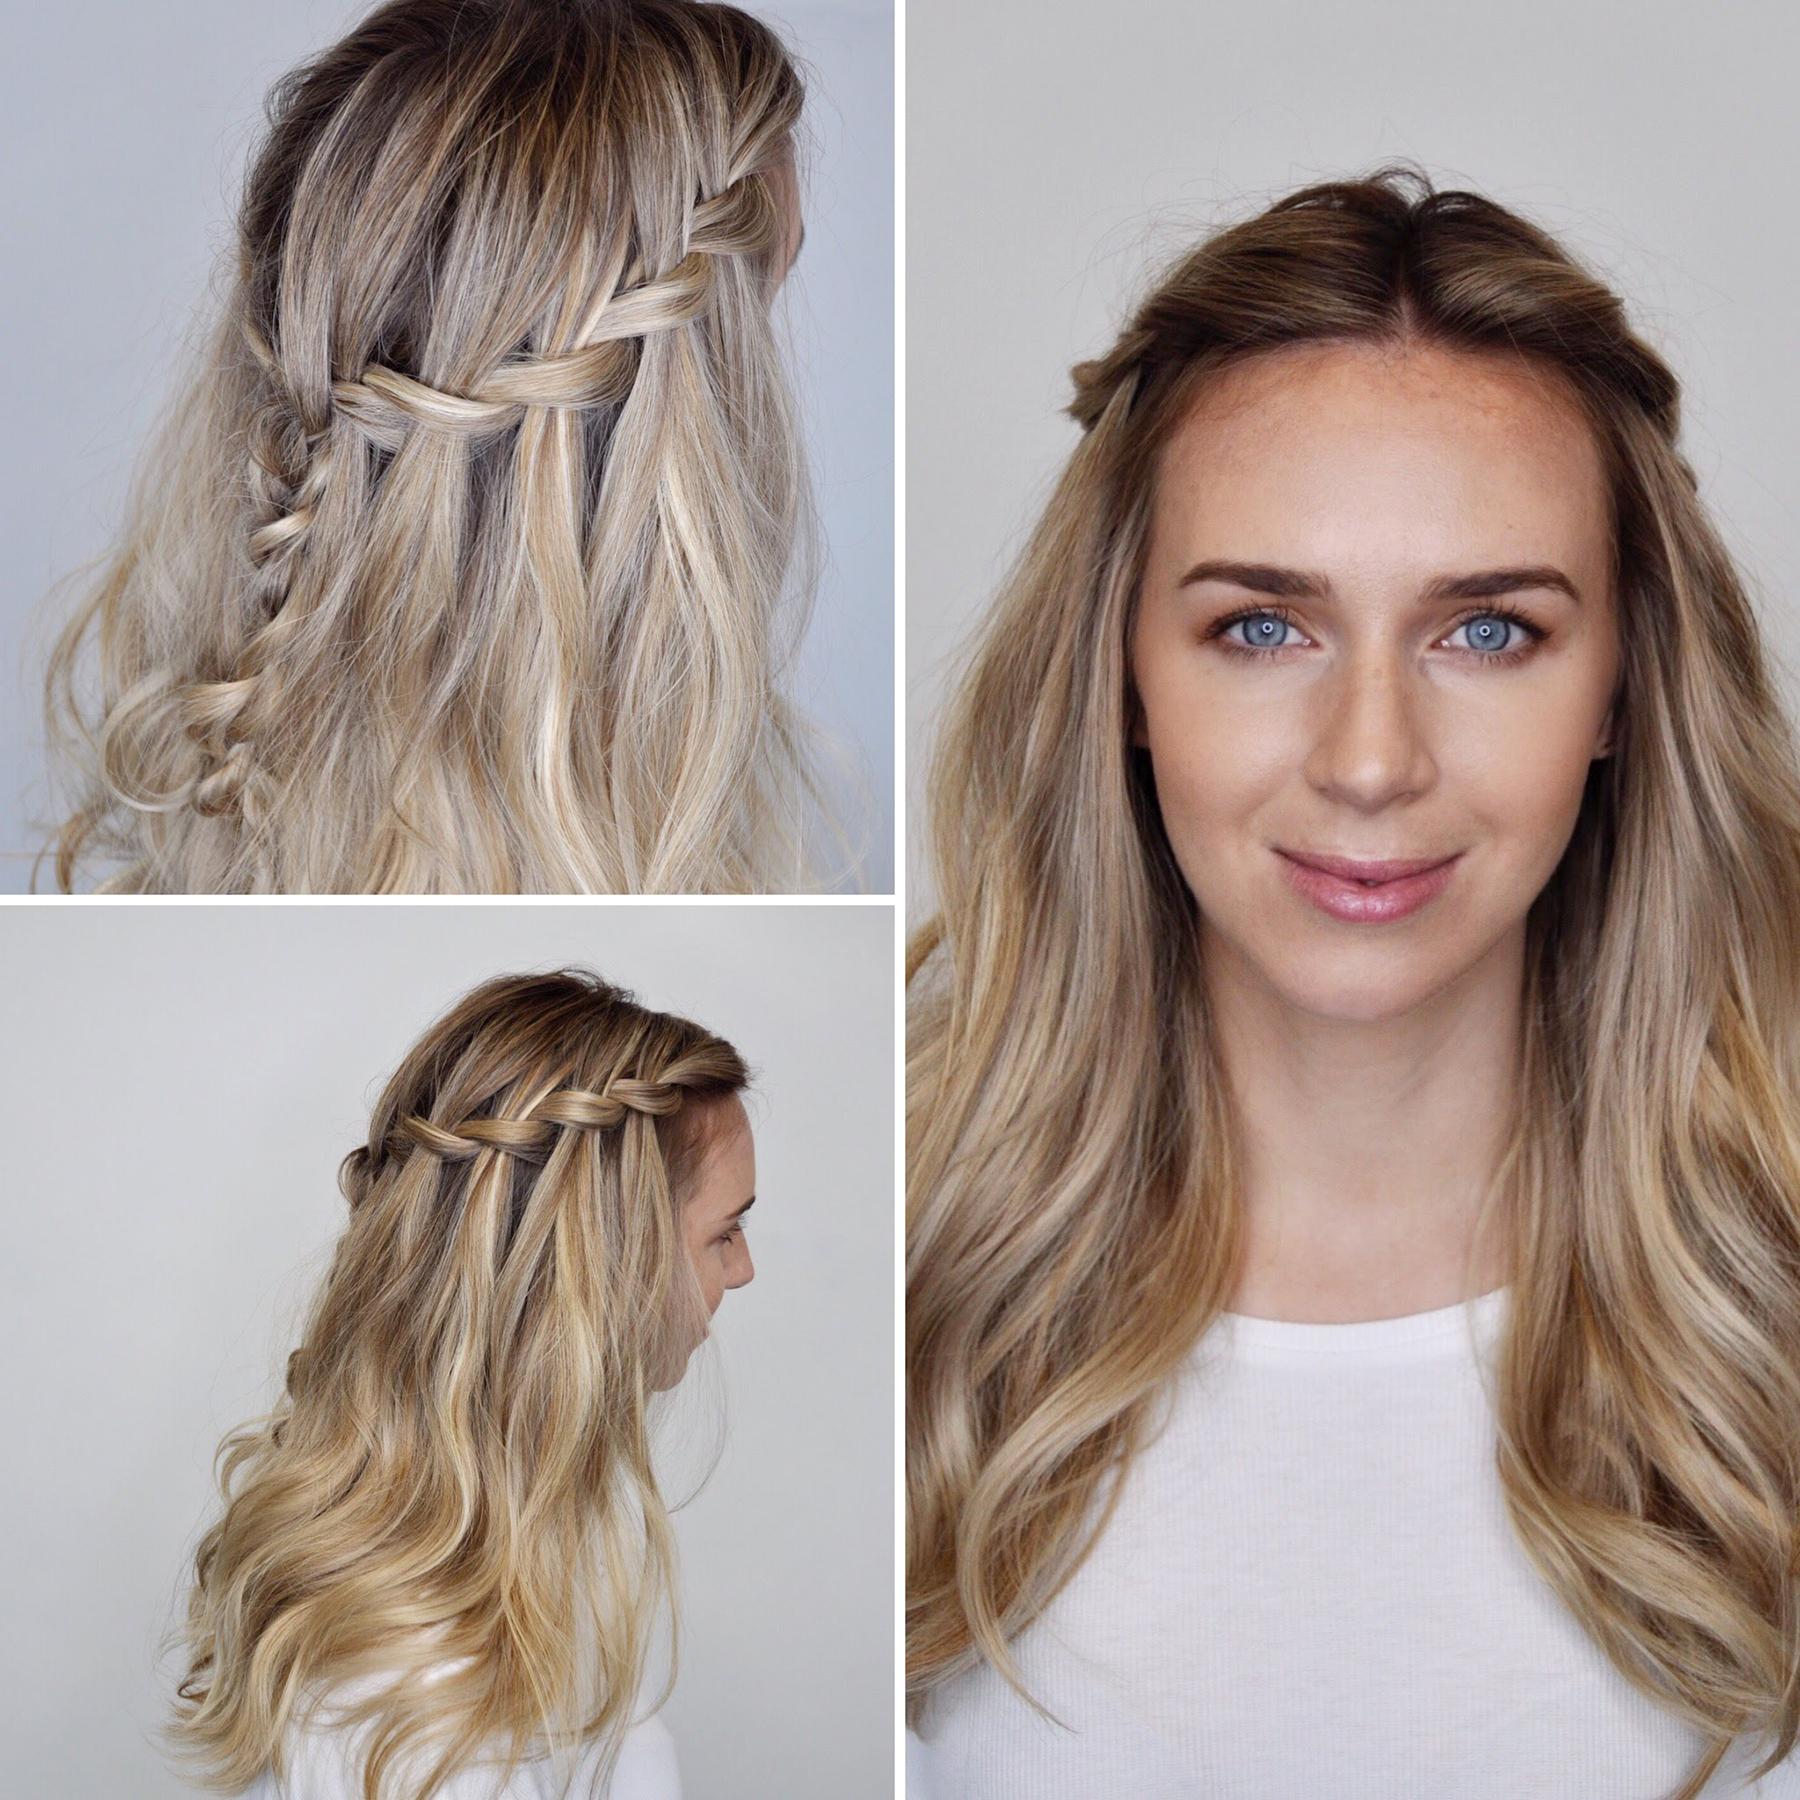 Real Simple For Preferred Waterfall Braids Hairstyles (View 3 of 20)